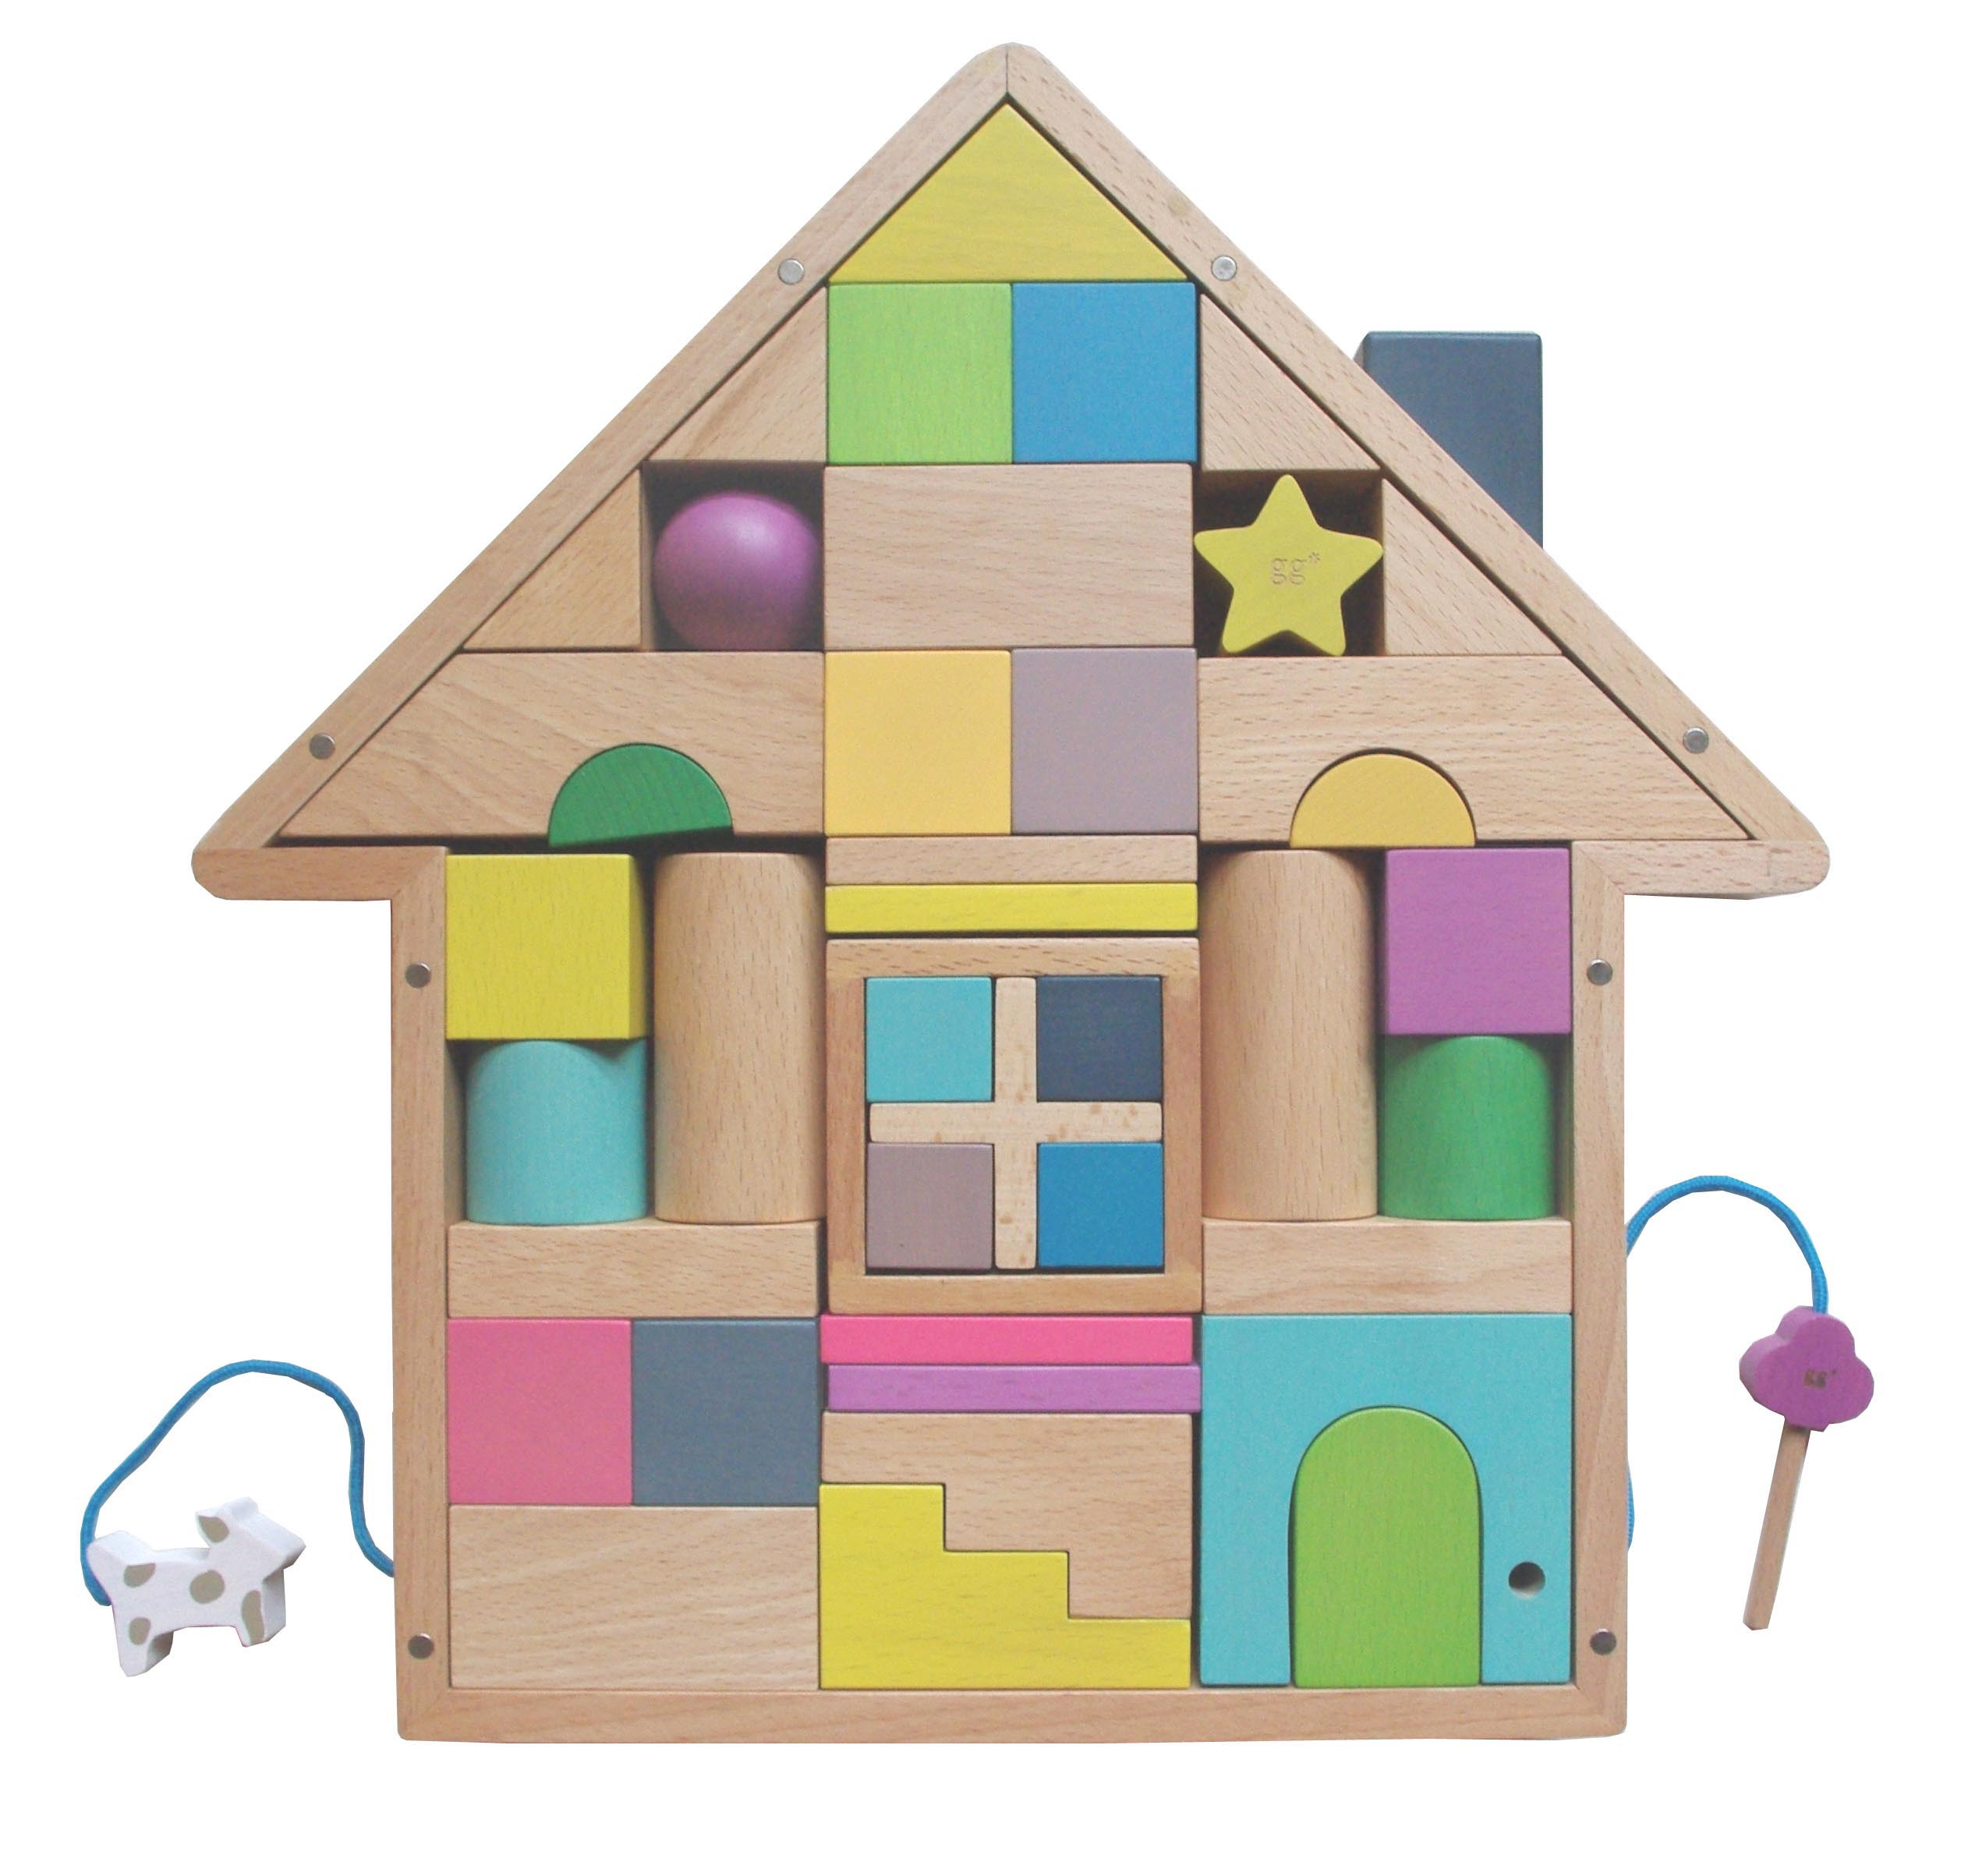 100 Christmas Gift Ideas for Kids: Top 20 Wooden Toys | Petit Bazaar